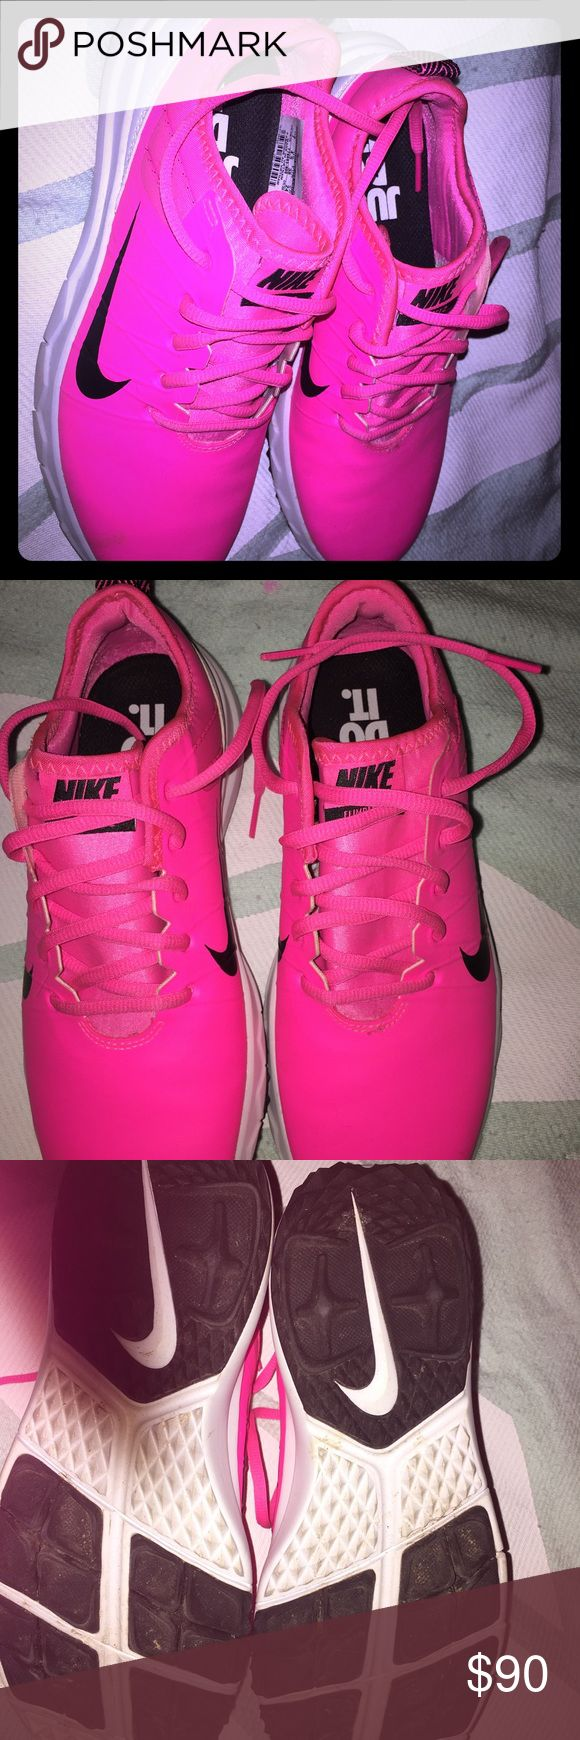 New woman's Nike workout shoes New w/o tags size 7 purchased them and just let them sit in my closet Nike Shoes Athletic Shoes